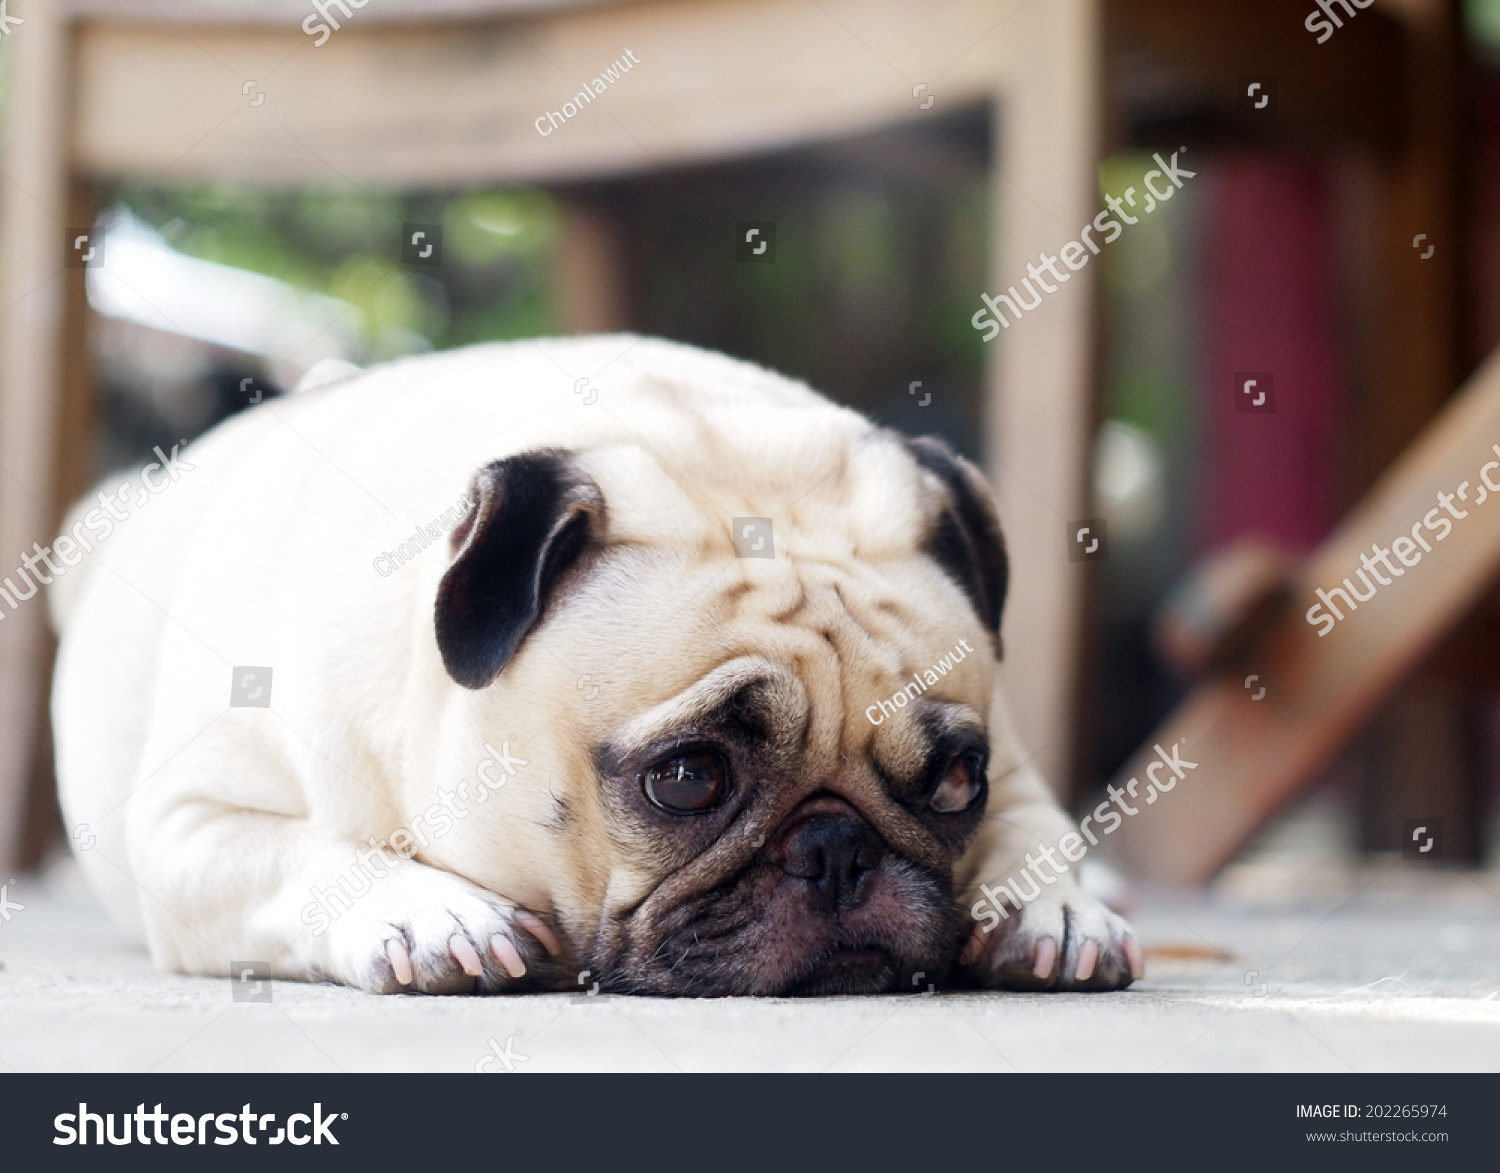 pug dating site It's a question all people desperate to own a dog have asked themselves: would i  be willing to pretend to be interested in a potential date so i.